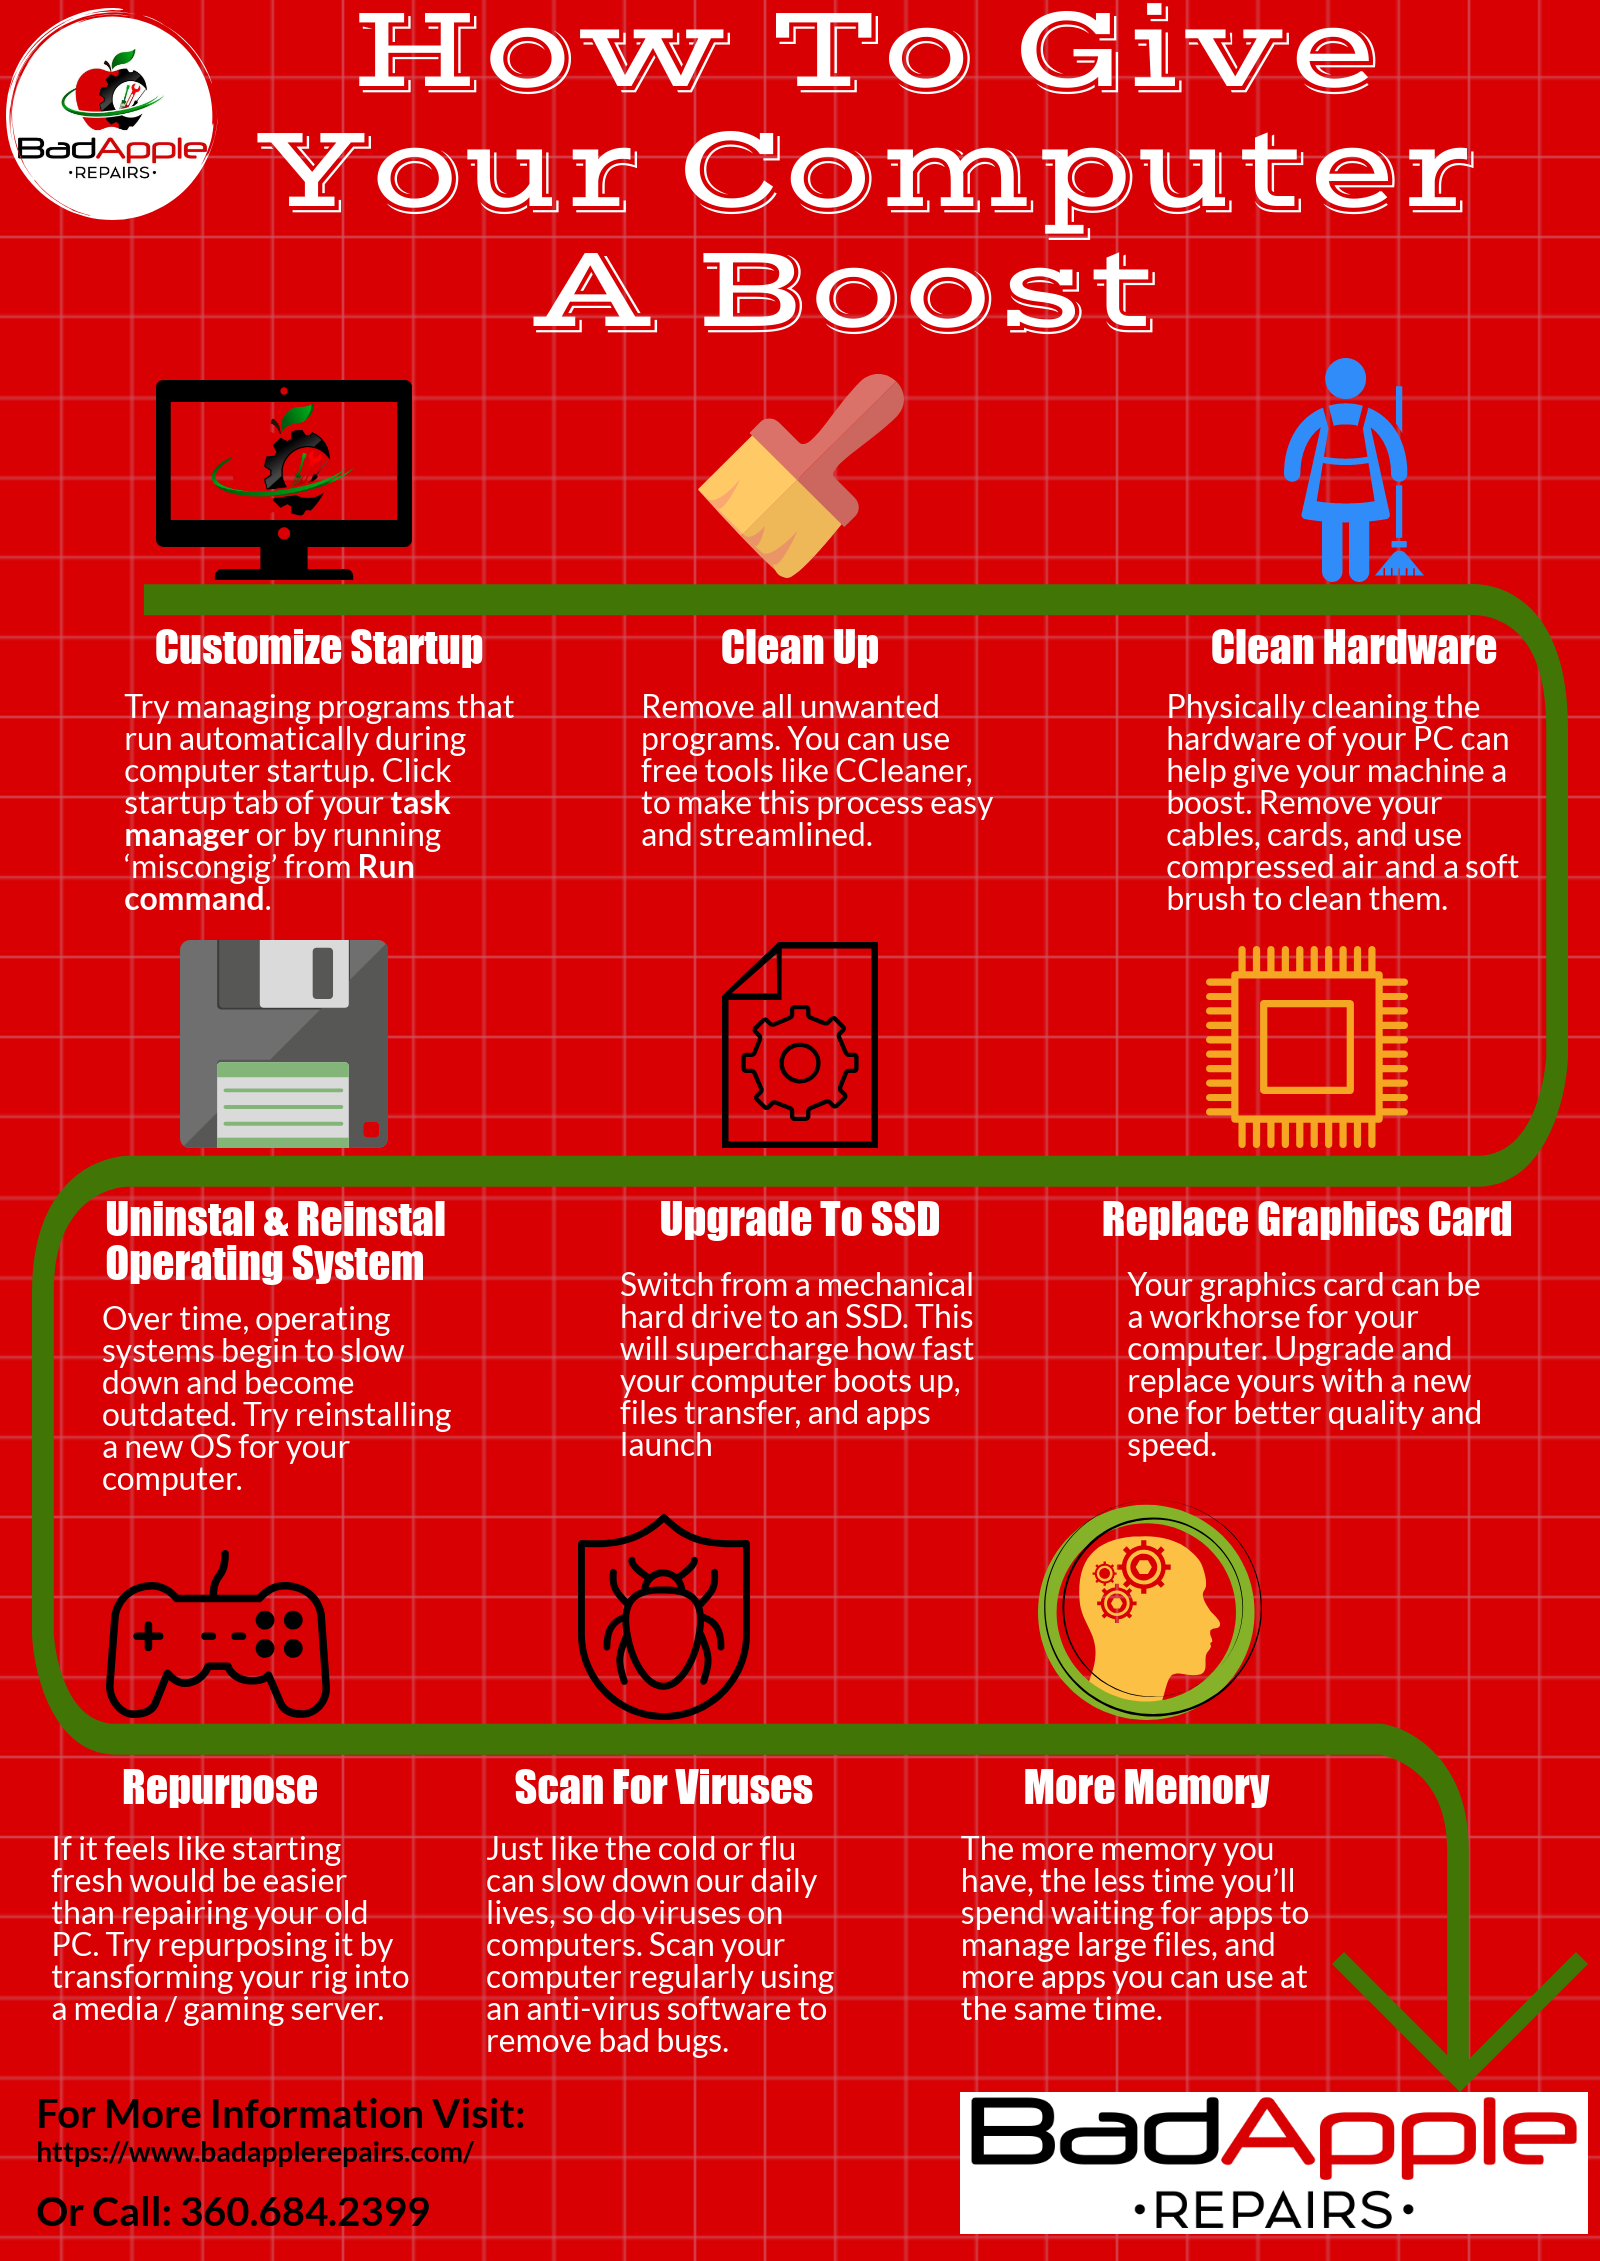 BadApple Repairs - Infographic: How To Give Your PC A Boost